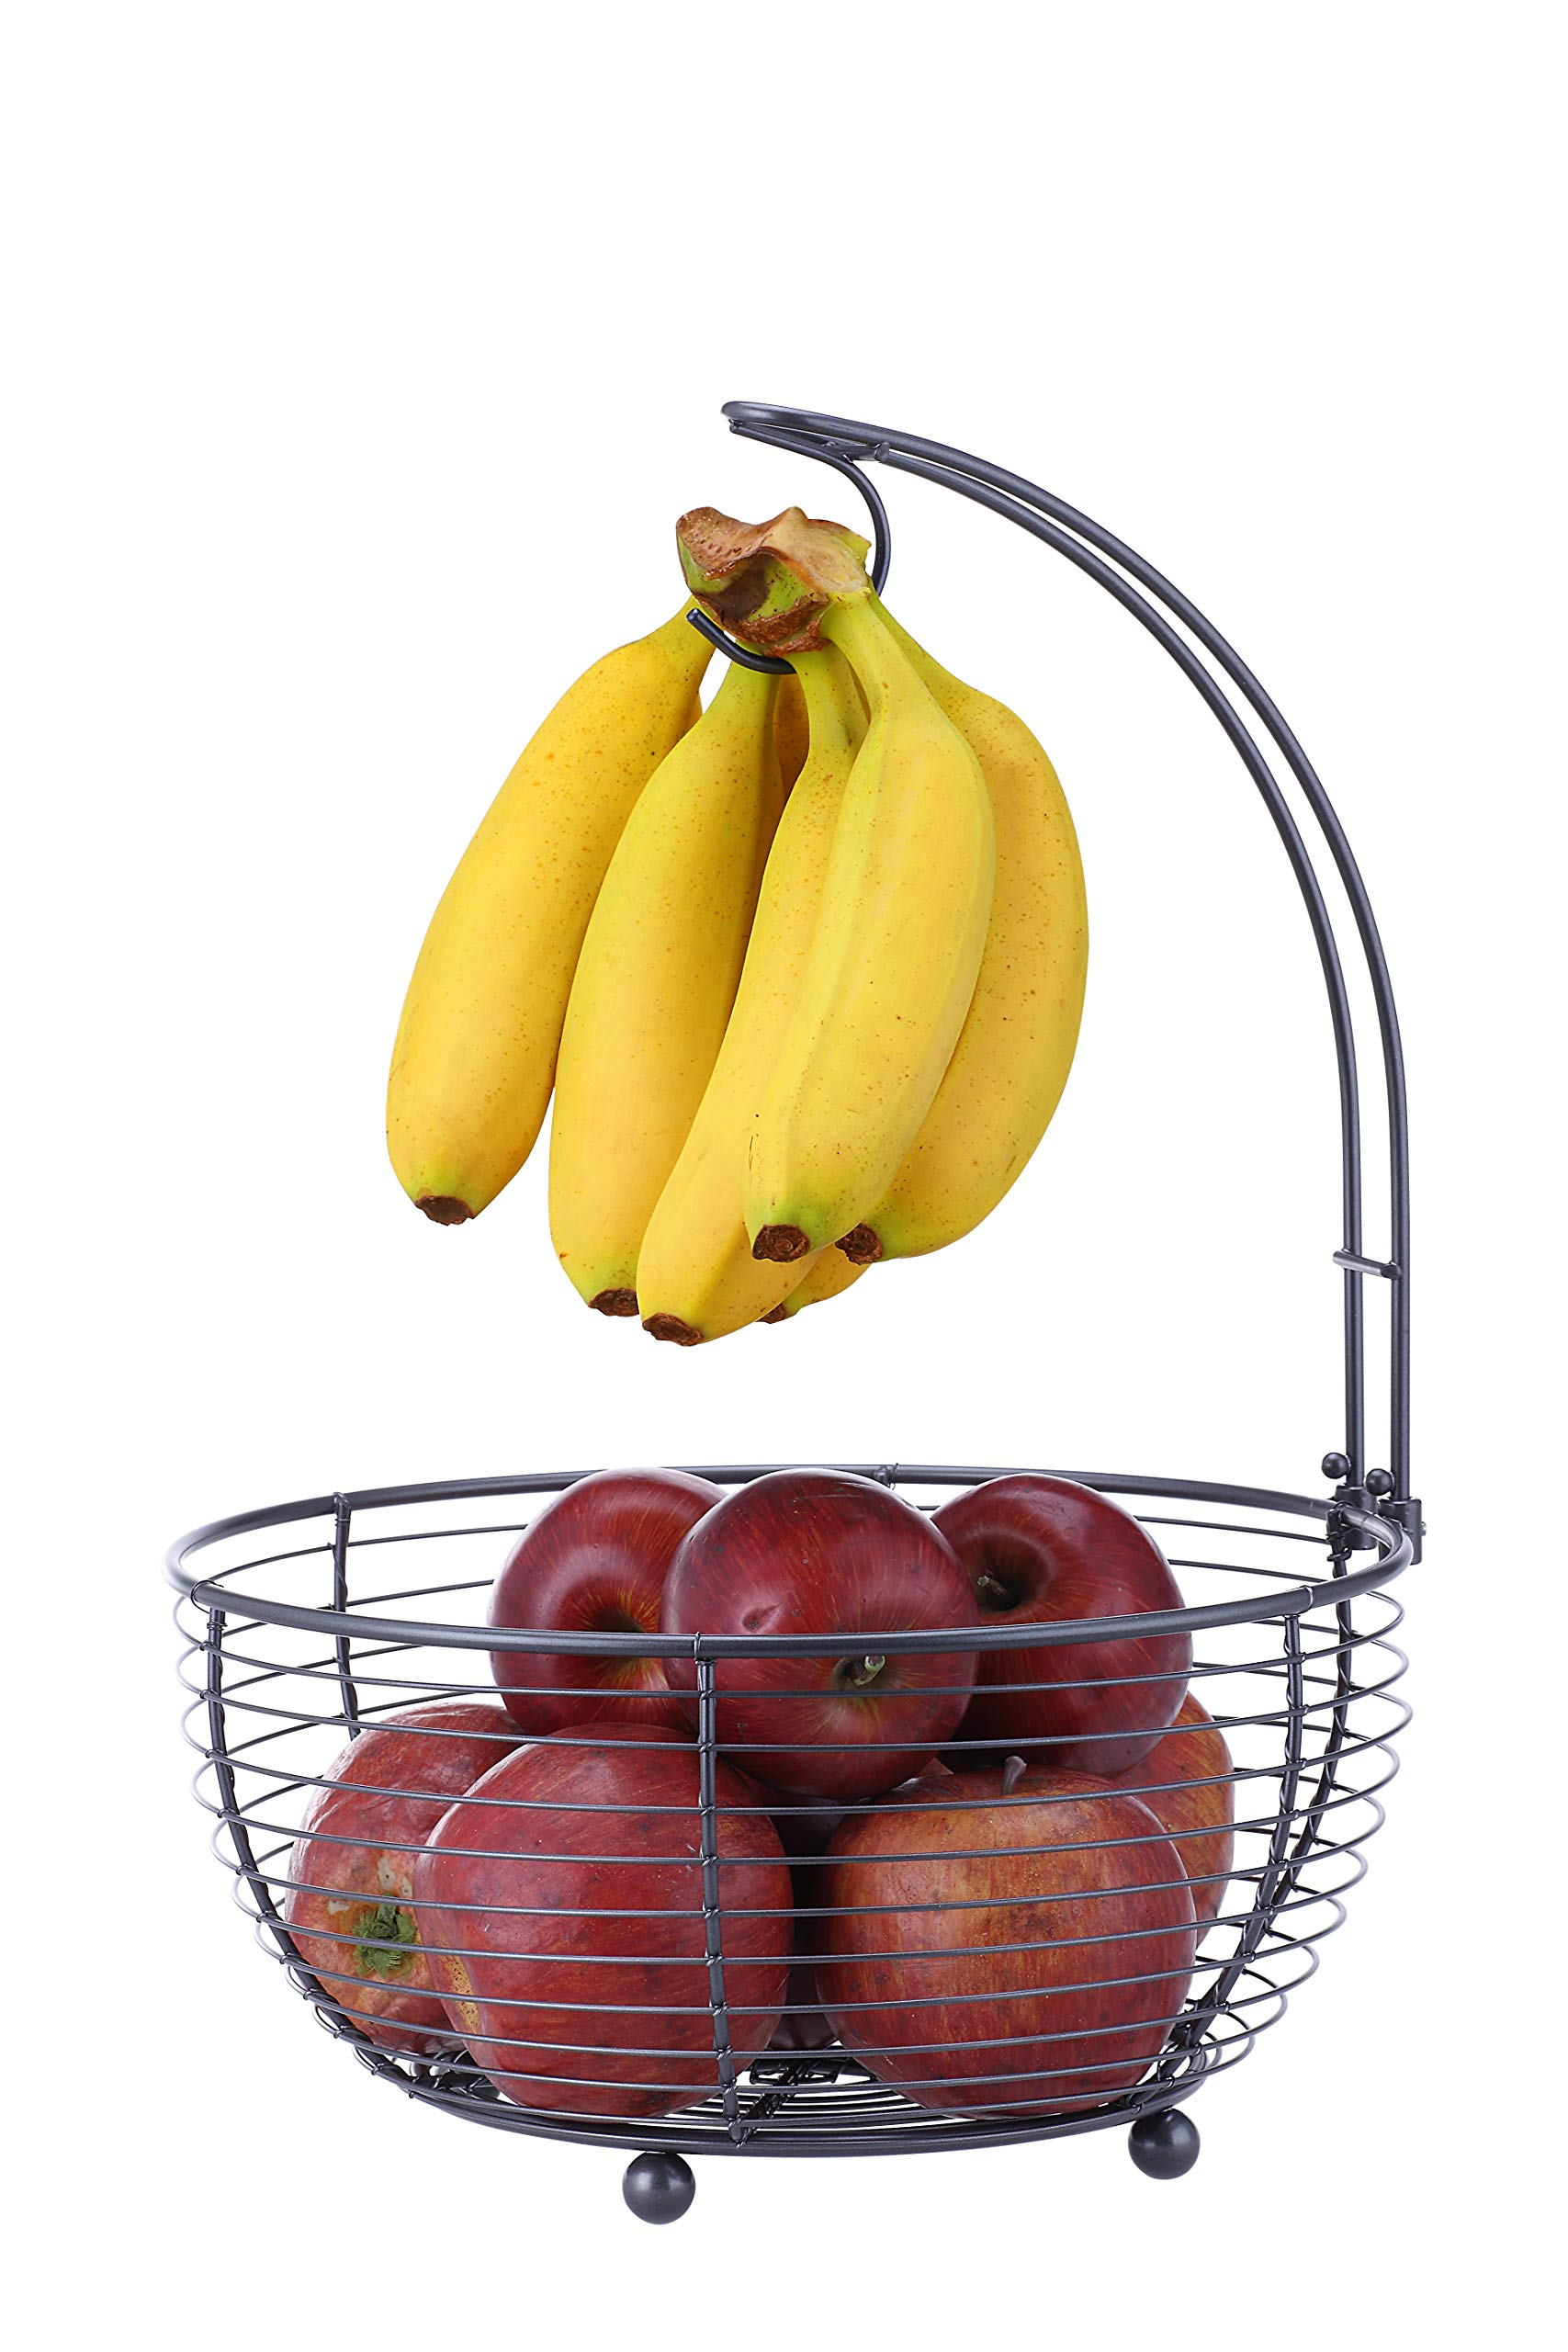 SunnyPoint Tabletop Wire Fruit Basket Bowl Stand with Banana Hanger, Black by SunnyPoint